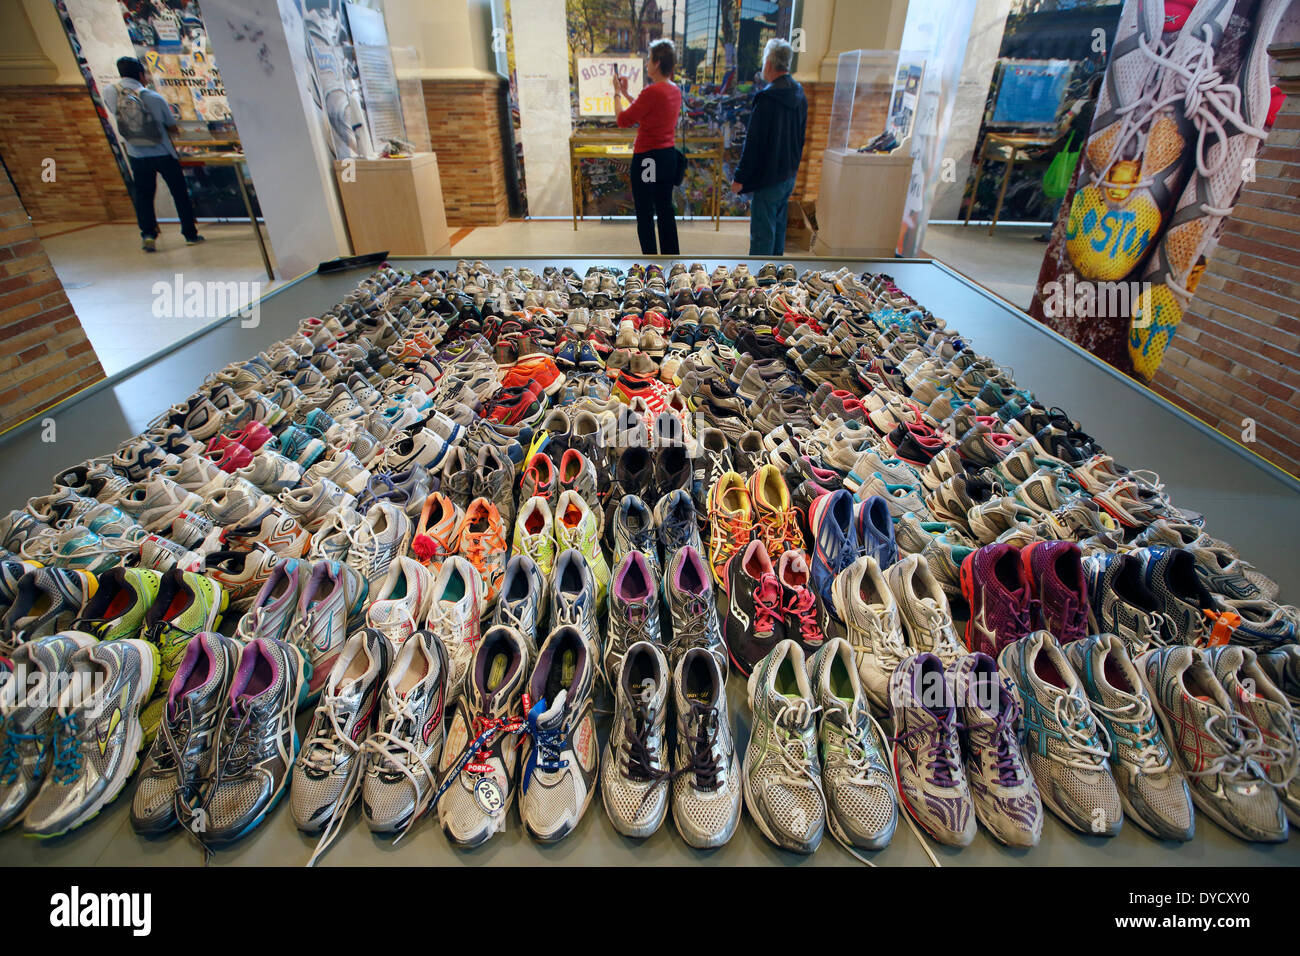 Boston, Massachusetts, USA, 14th April 2014. A collection of running shoes is on display at the Marathon Memorial exhibit in the Boston Public Library. Tuesday, 15th April marks the one-year anniversary of the Boston Marathon bombings. - Stock Image